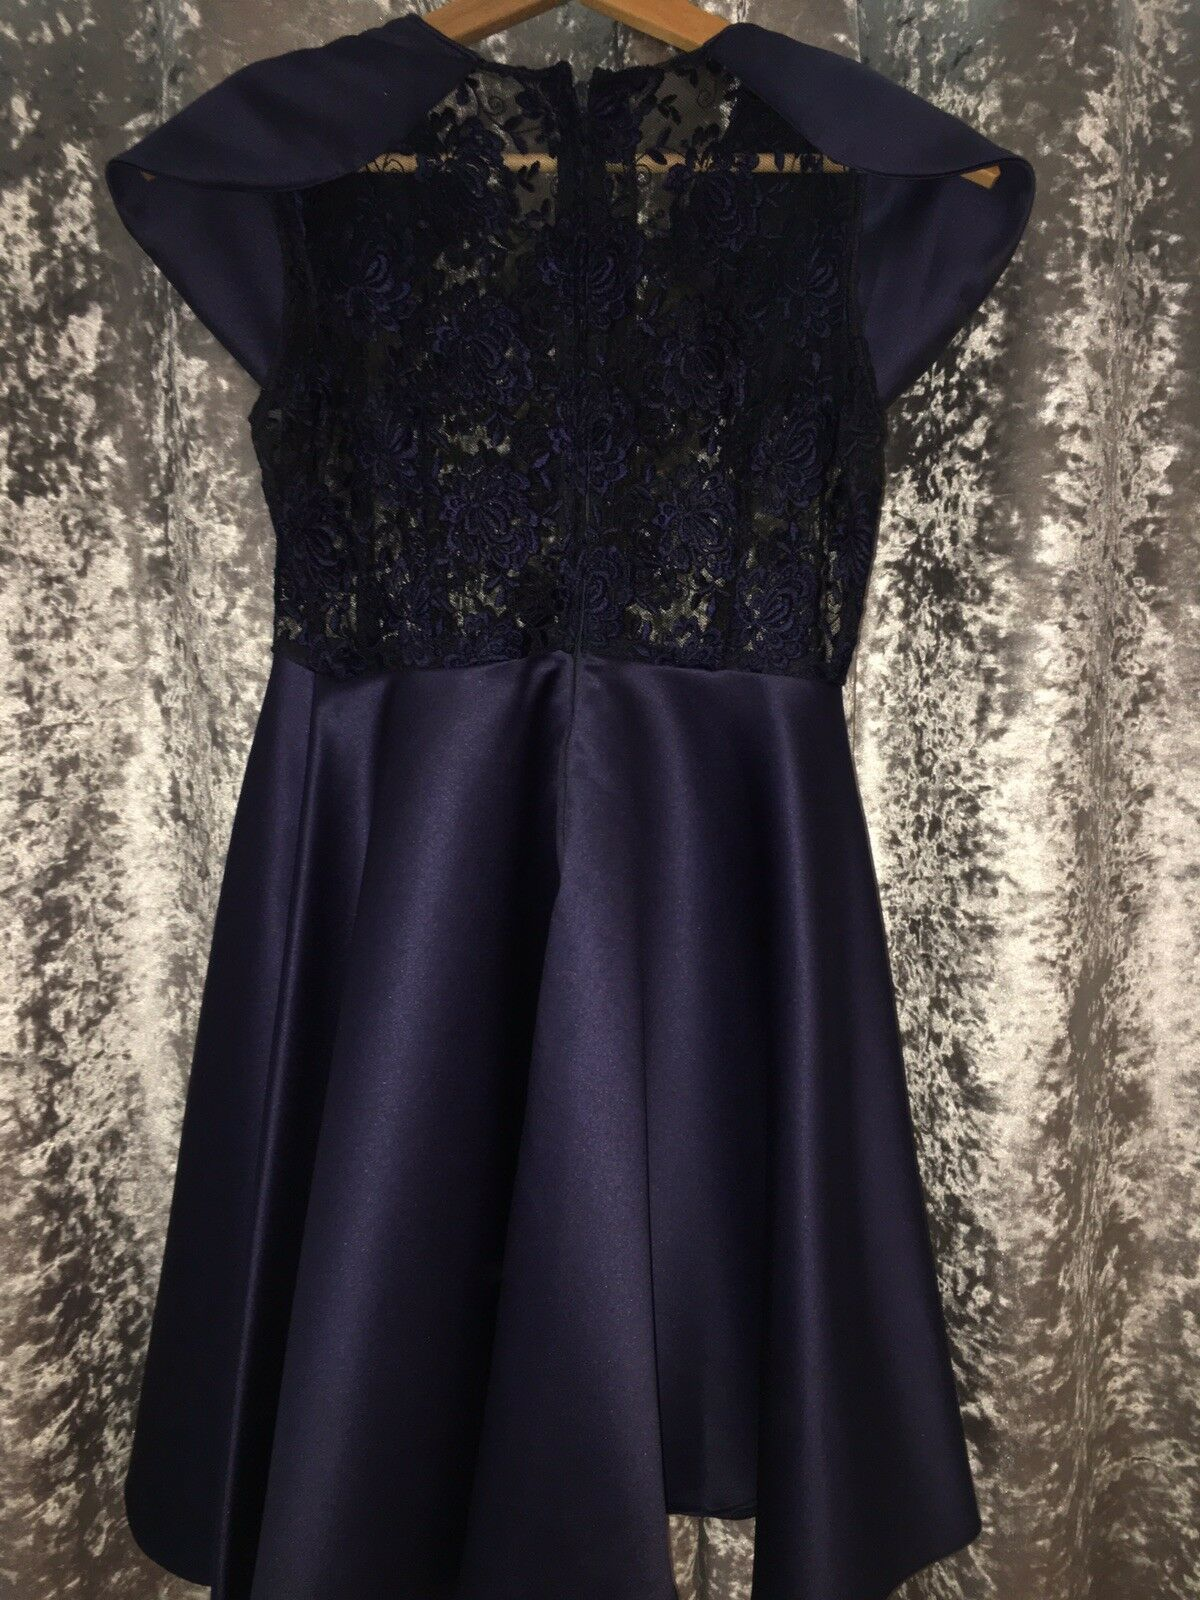 Handmade Prom Prom Prom Navy, silk and lace dress. Fits Dimensione 8-10 8d01c3